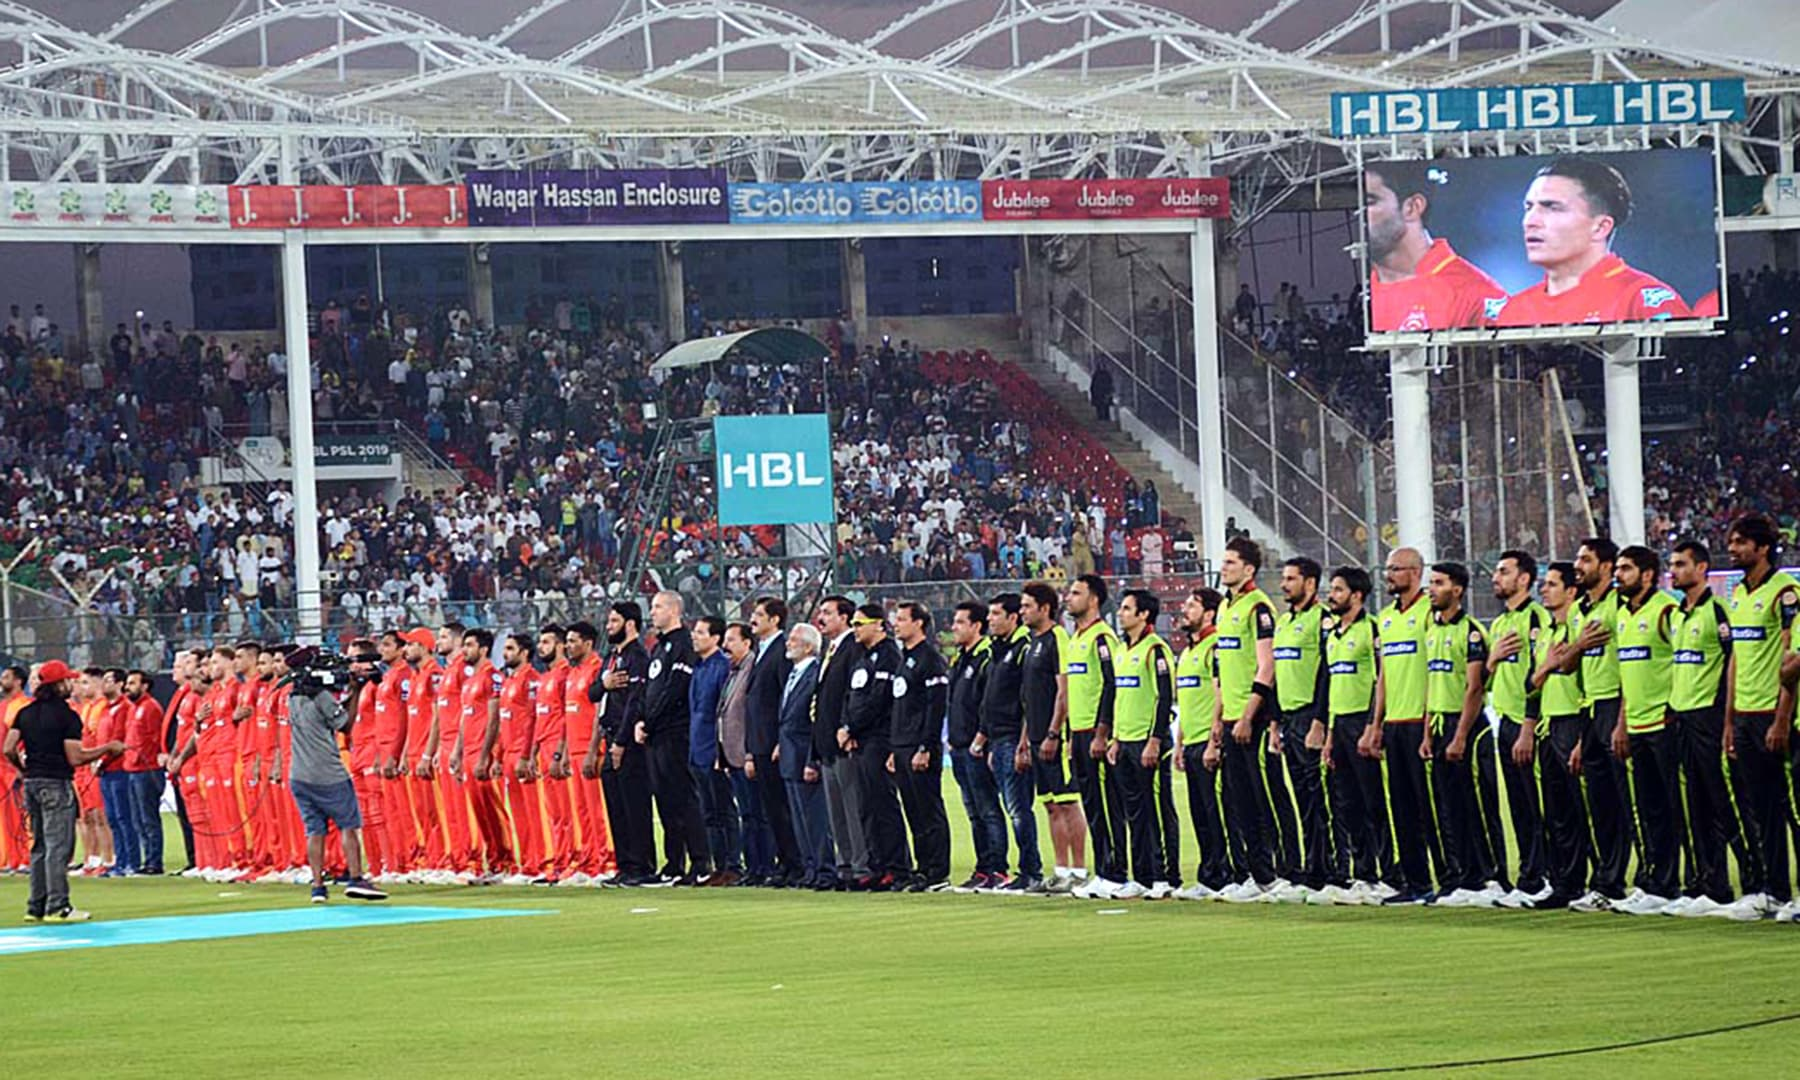 Sindh Chief Minister Syed Murad Ali Shah along with PCB Chairman Ehsan Mani and officials and players of Lahore Qalandars and Islamabad United teams standing as the National Anthem is played before the  start of  the match. — APP